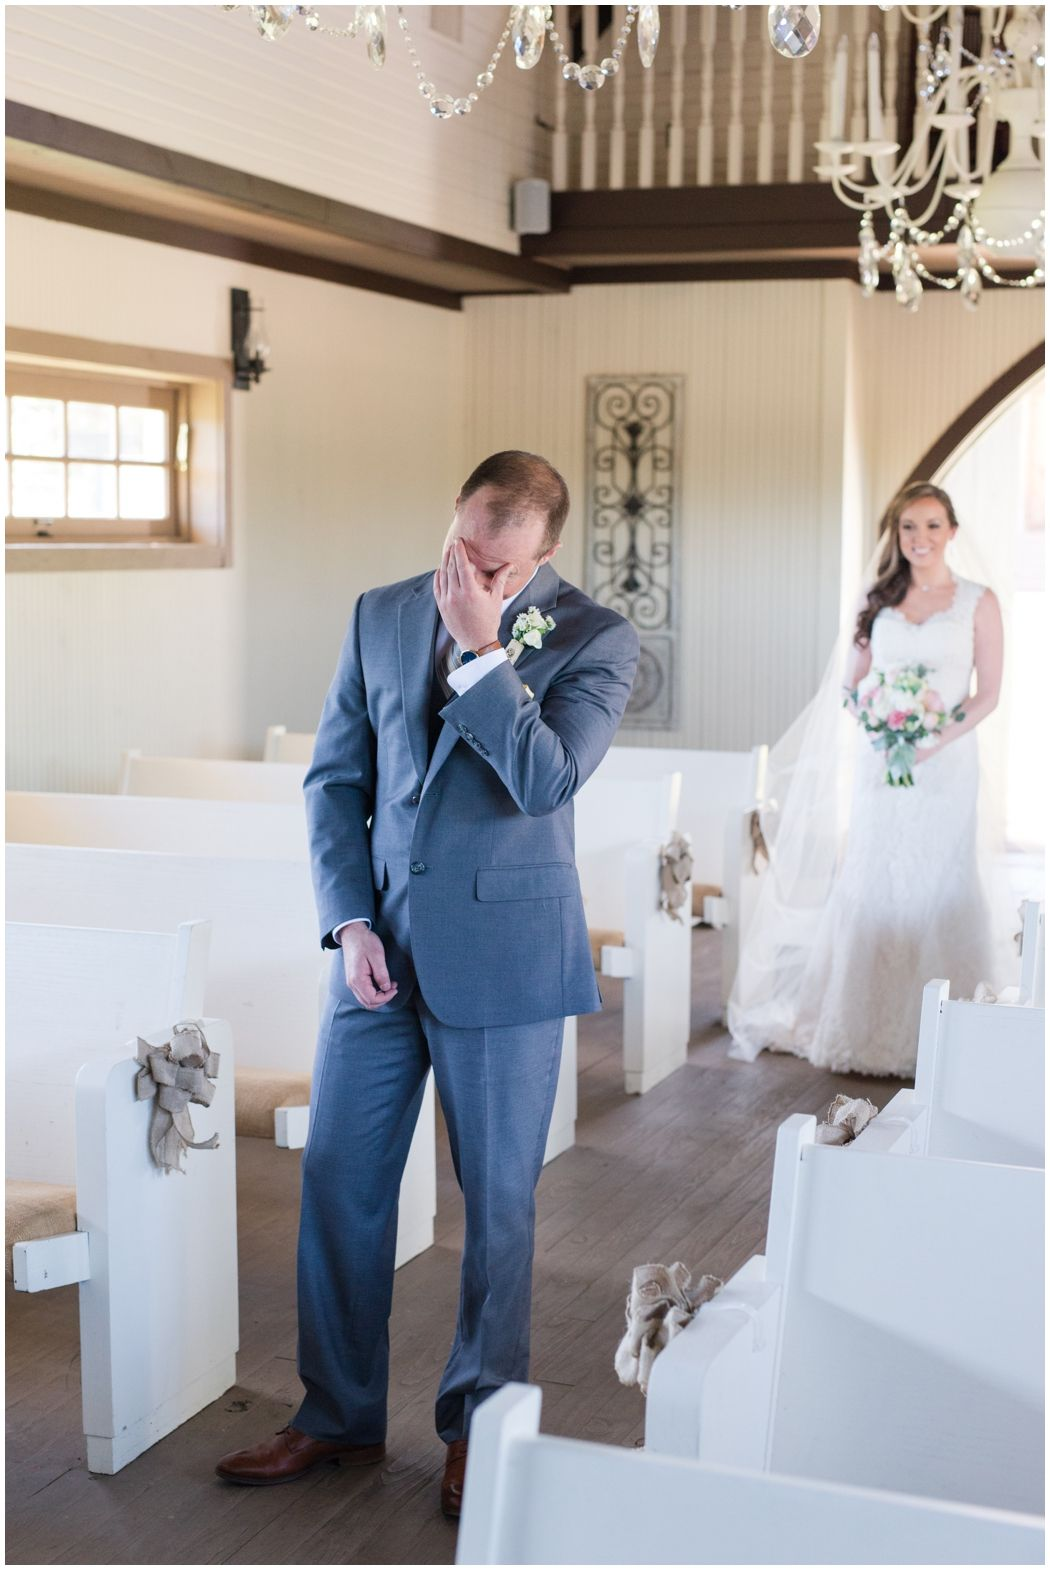 First Look in Little White Chapel with burlap church pews at Yellow Wedding at twisted ranch near Austin, texas